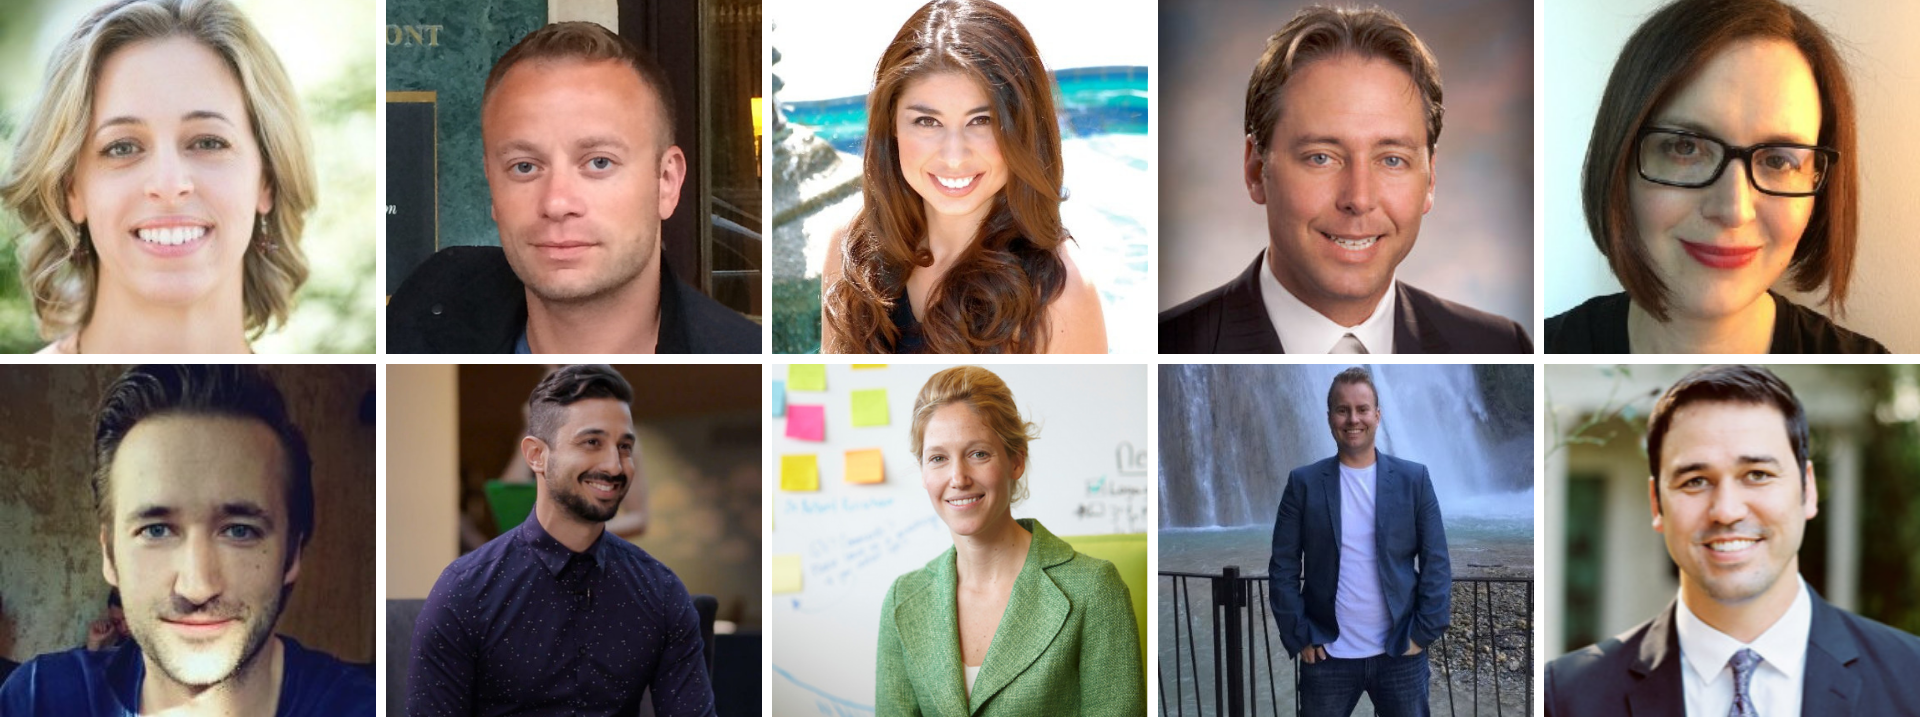 These 10 CEOs Share Tips and Benefits to Working Remotely